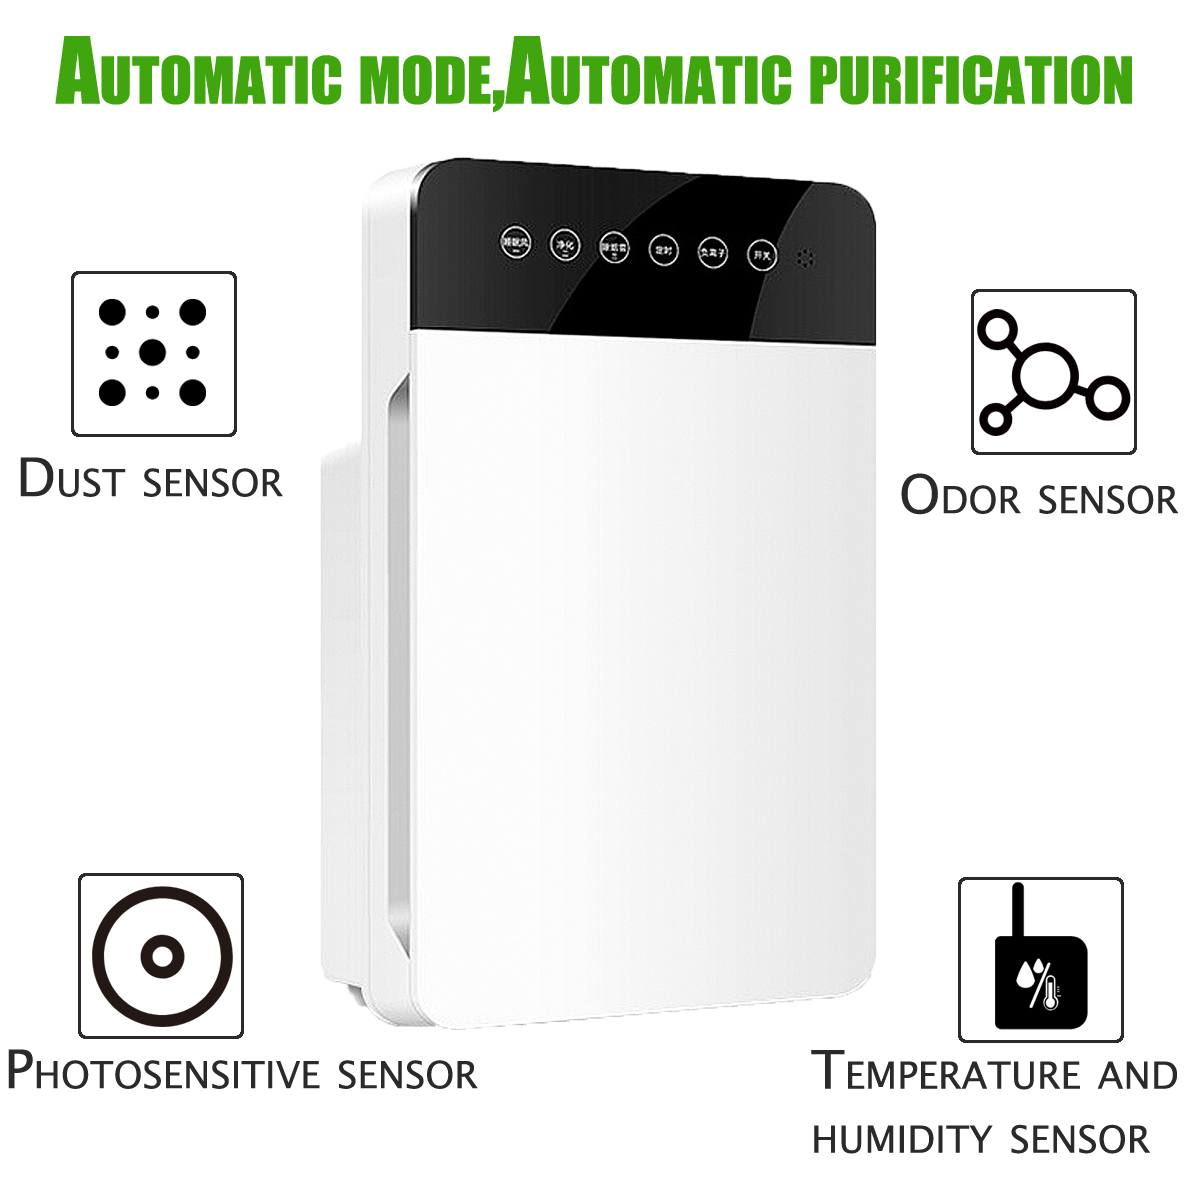 HEPA Filter Replacement For AUGIENB HEPA Filter Reduce Mold Odor Smoke  NEW5